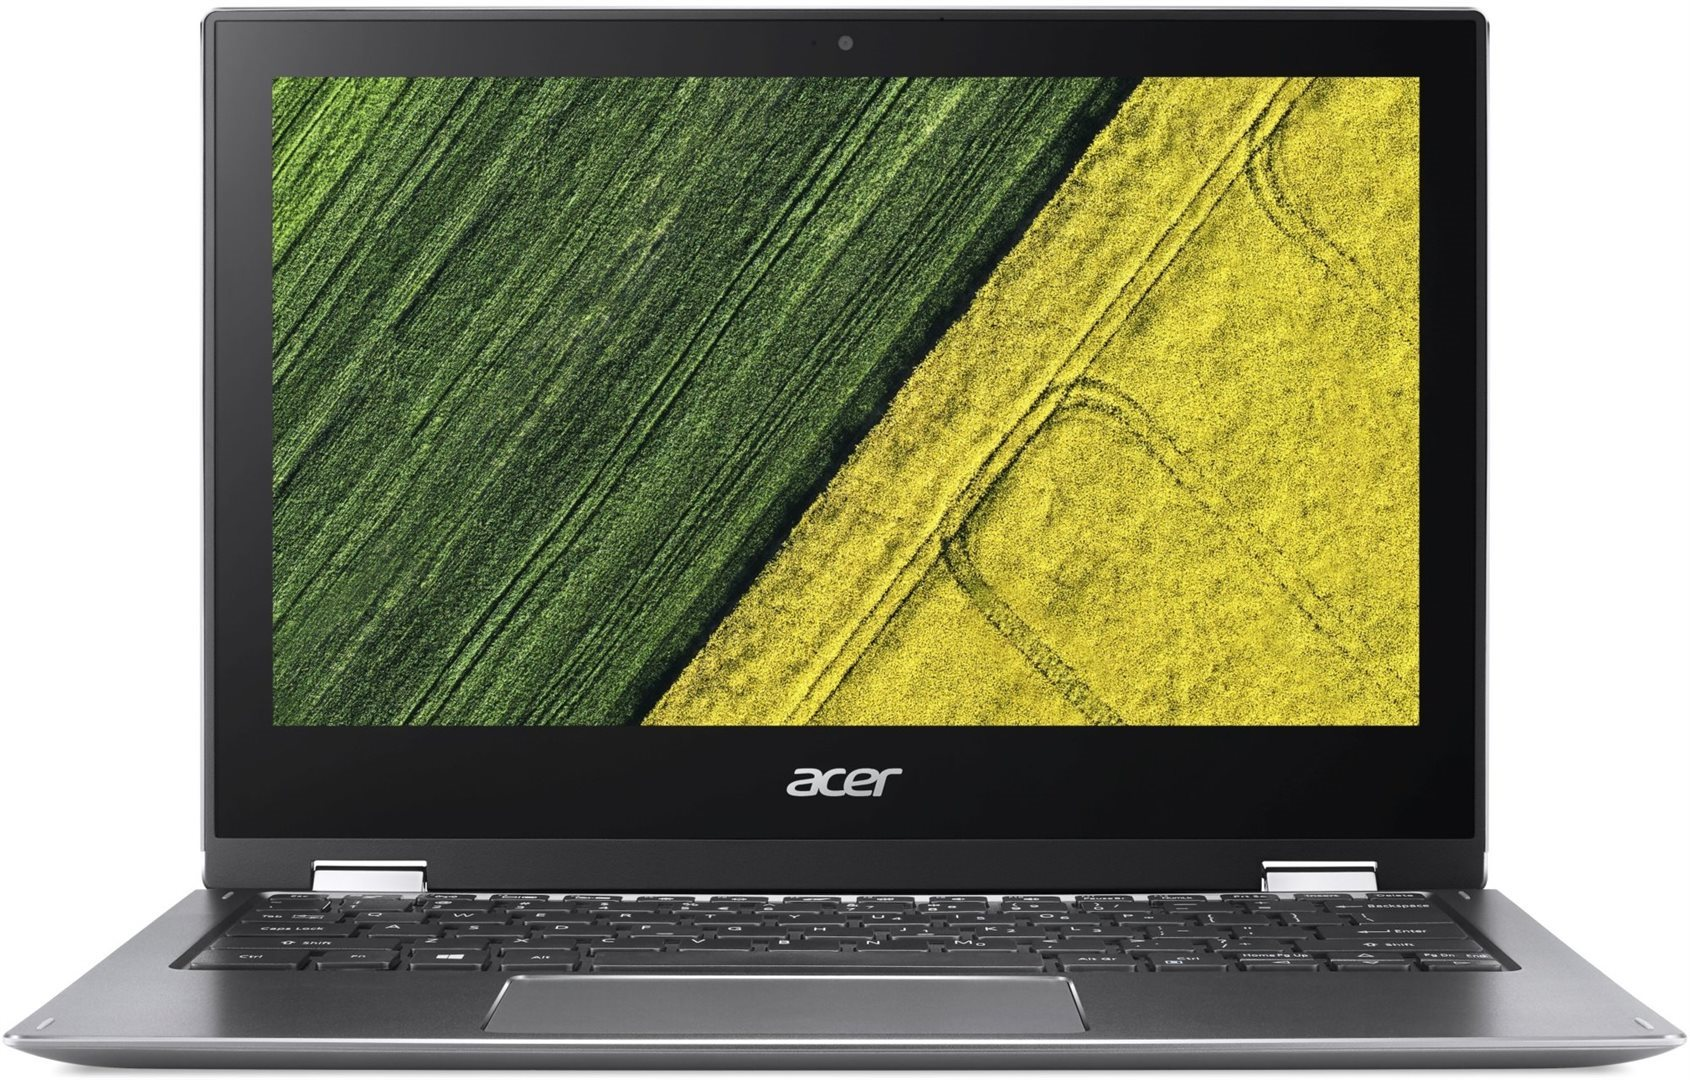 "Acer Spin 1 (SP111-34N-P8A4) Pentium Silver N5000/4GB+N/A/eMMC 64GB/HD Graphics/11.6"" Multi-touch FHD IPS/BT/W10 Home S+Office 36"